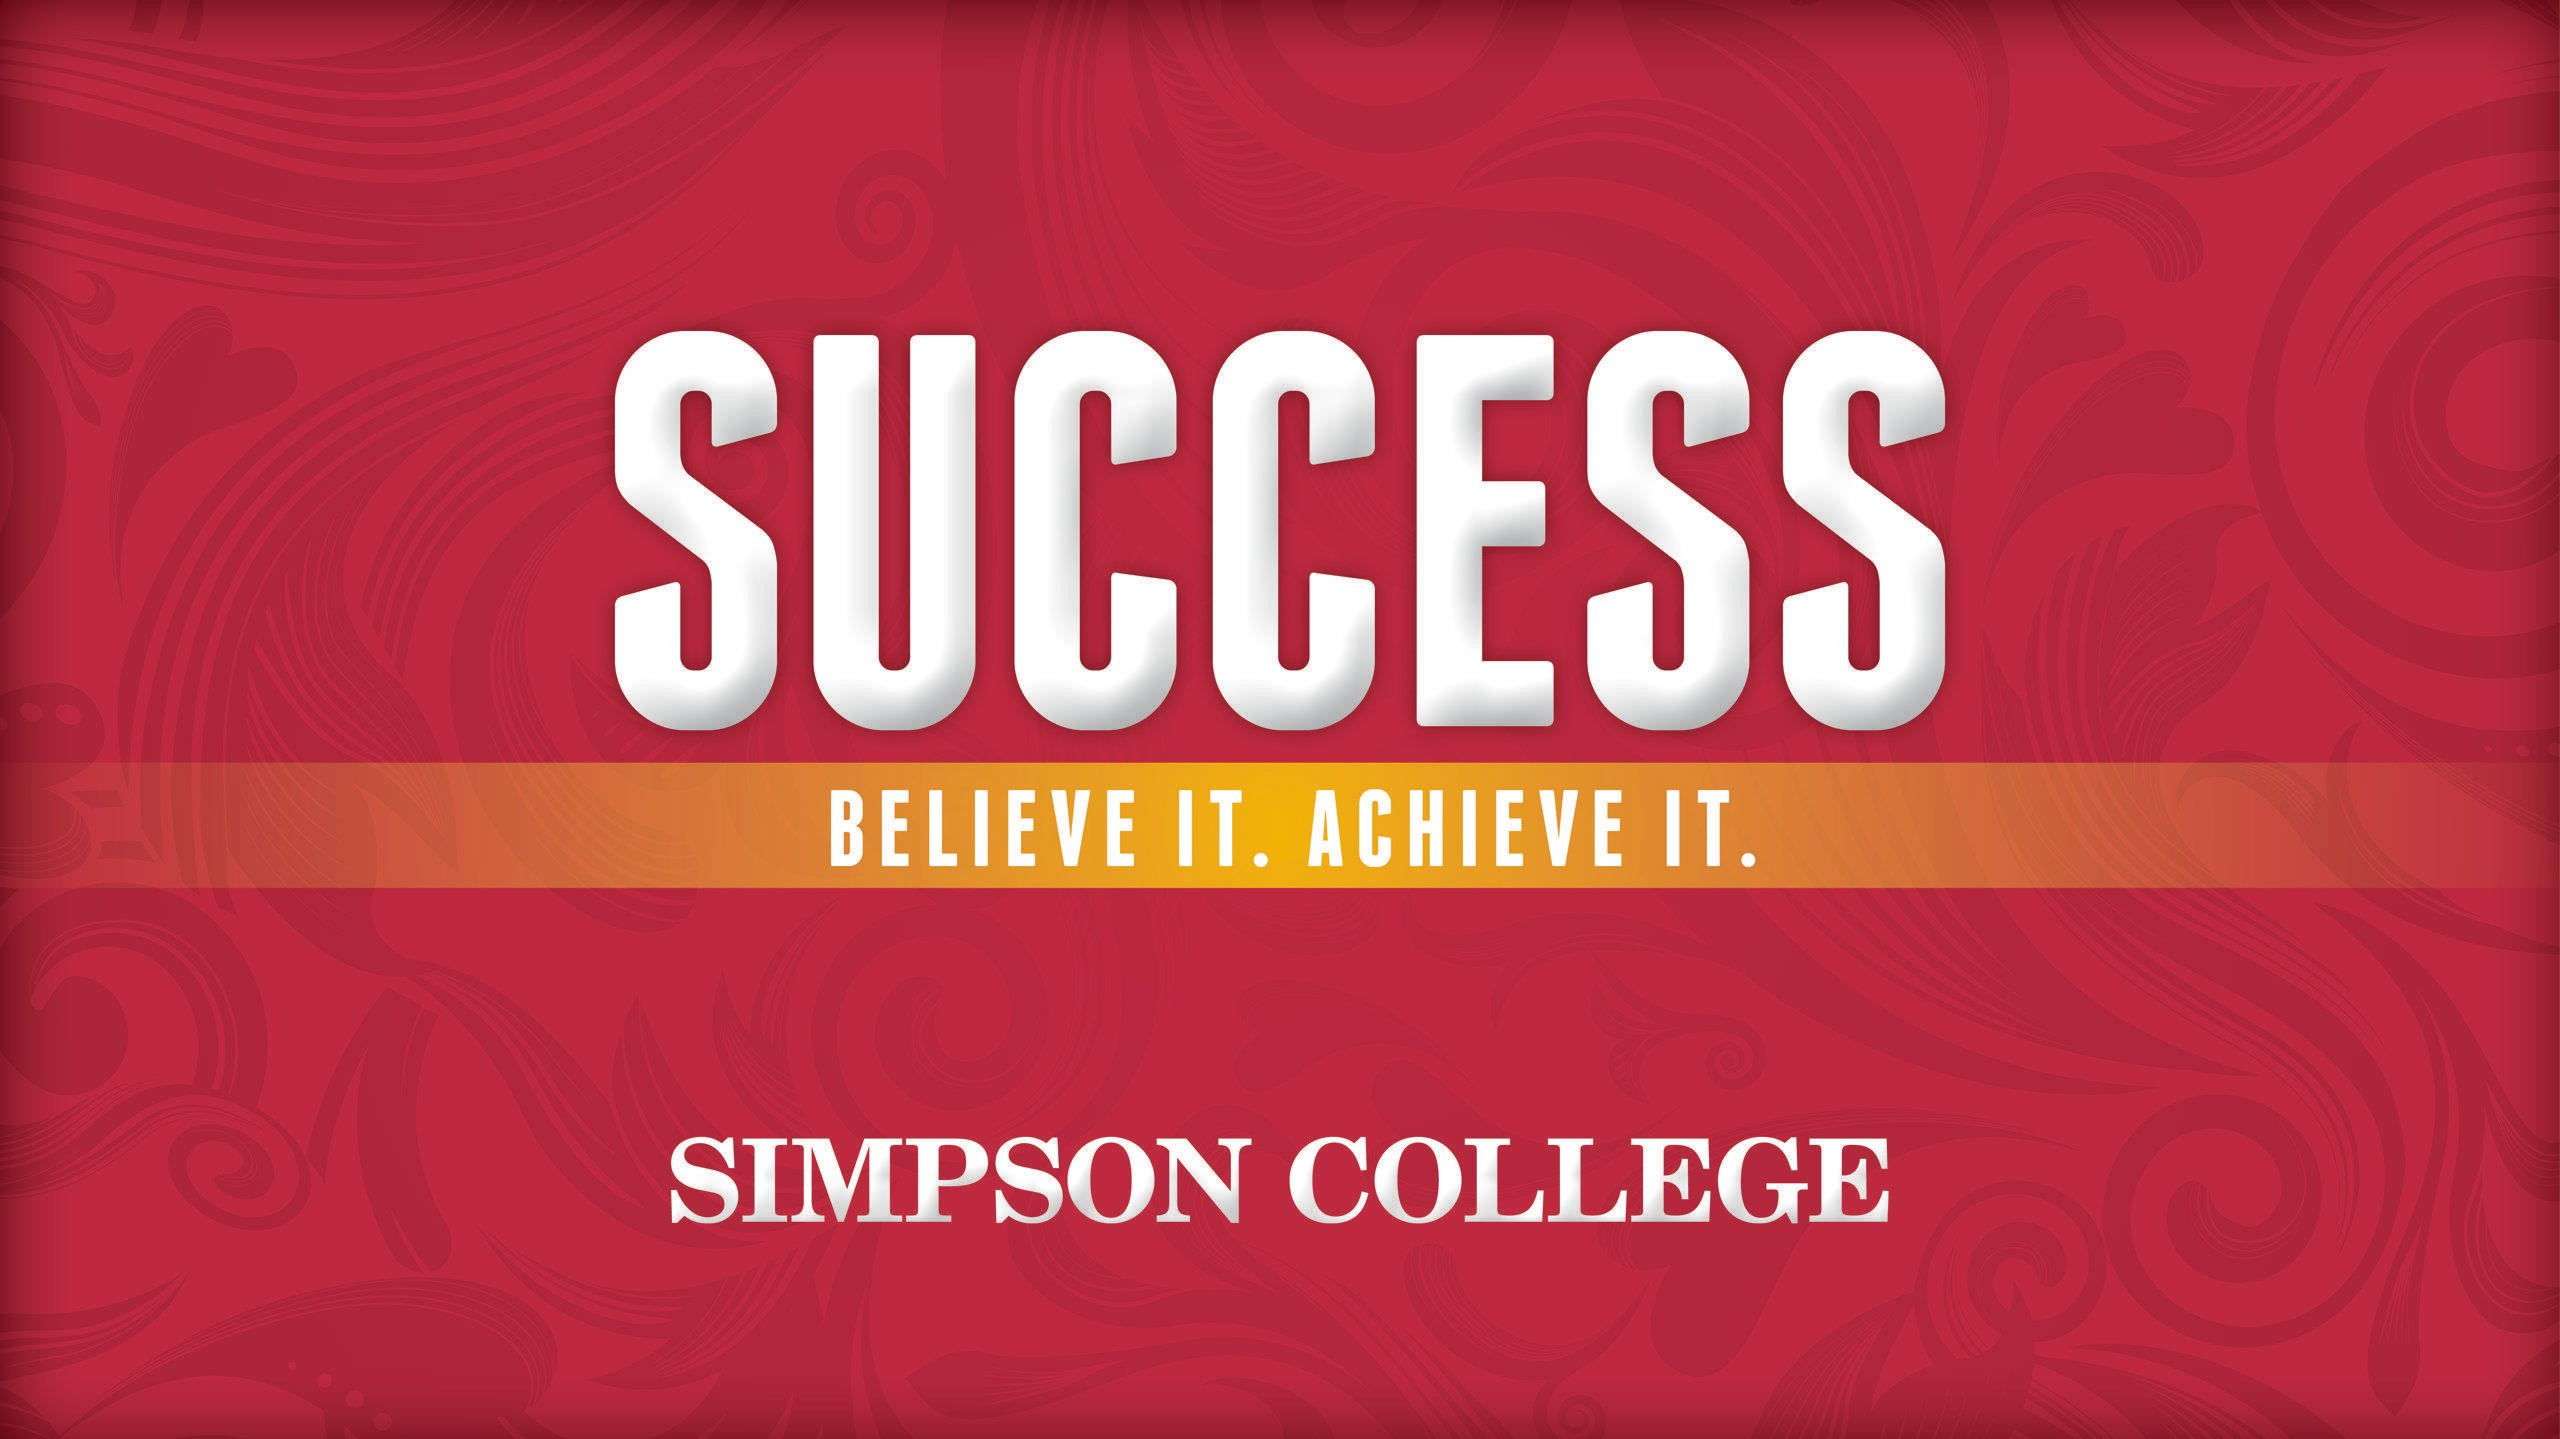 success wallpapers widescreen - photo #6